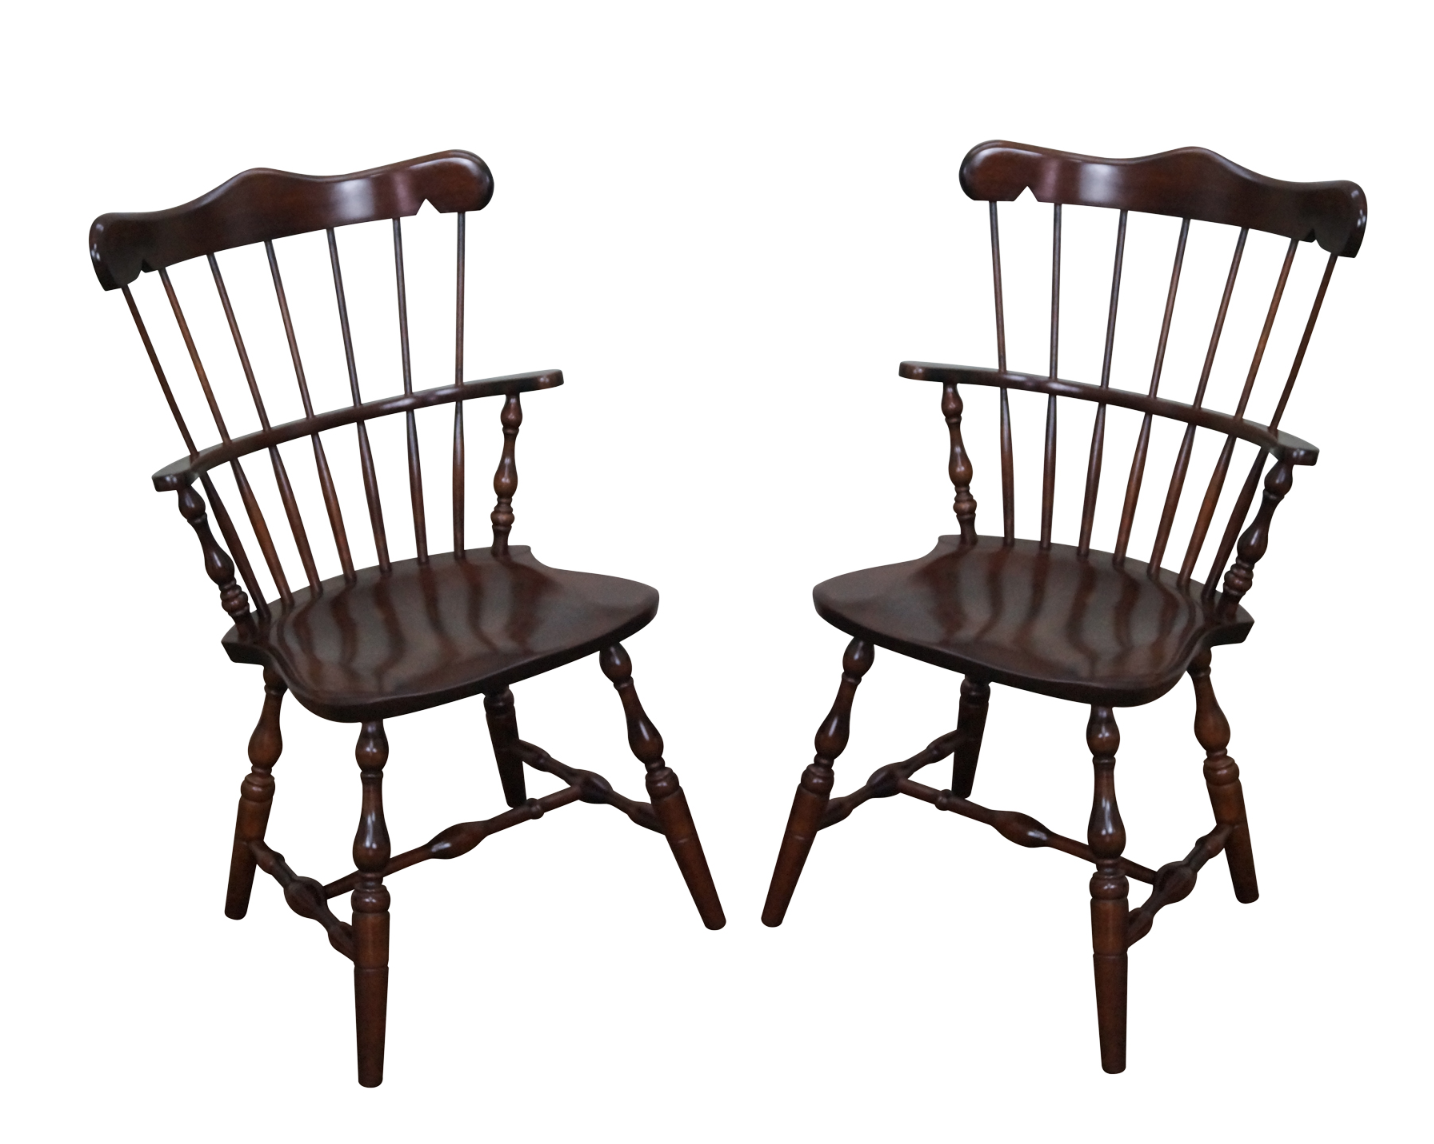 S Bent Bros Solid Maple Windsor Chairs A Pair Chairish